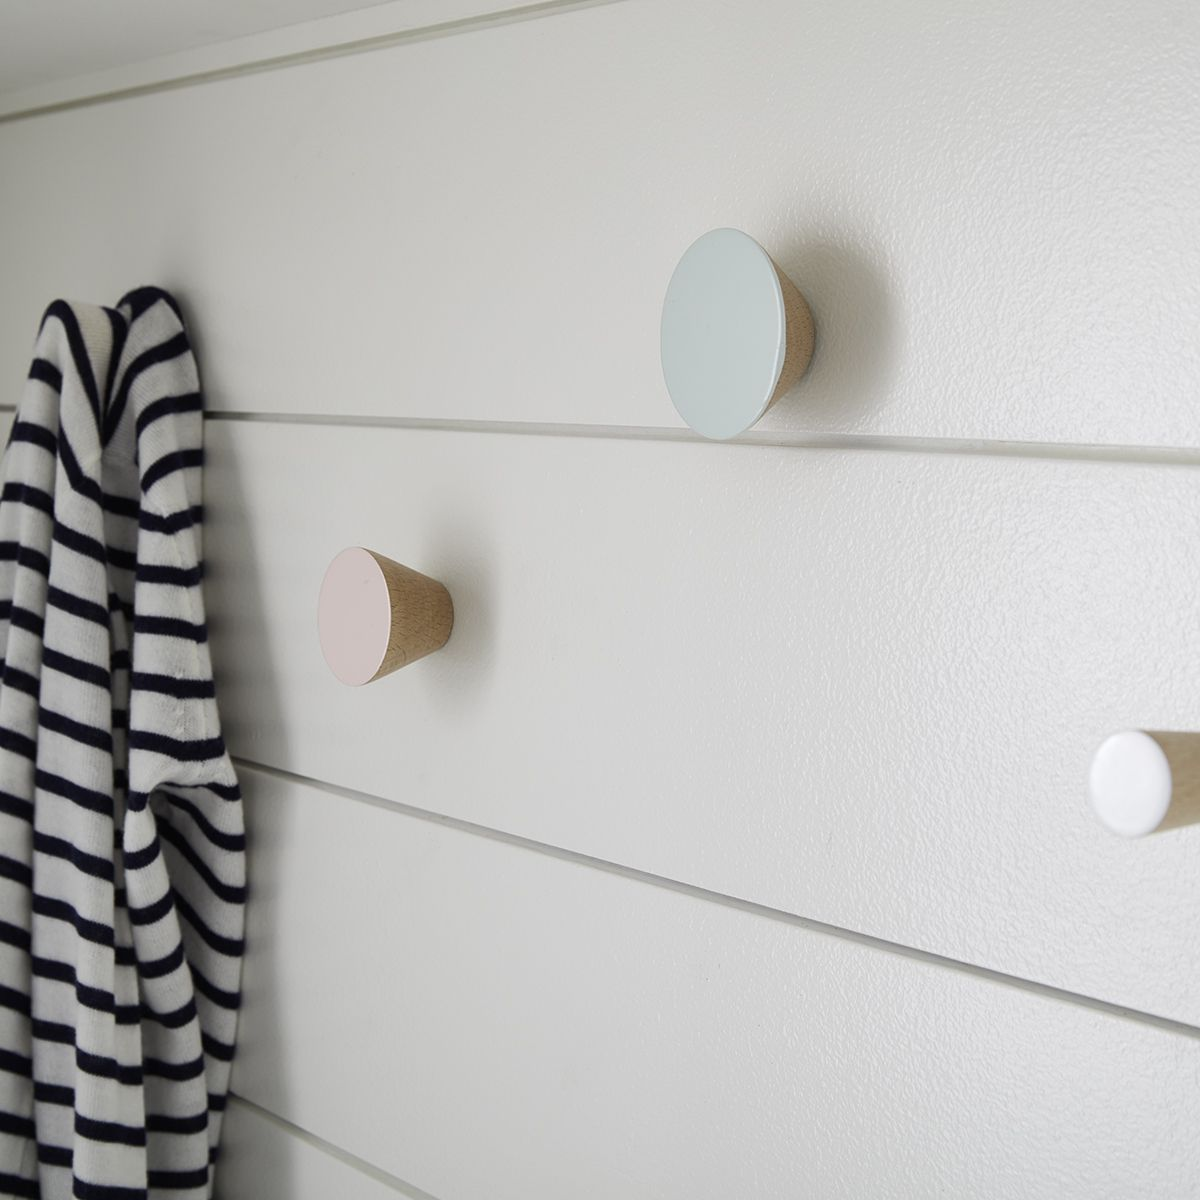 Stylish Entryway Wall Storage Hooks With Images Storage Hooks Decorative Hooks Coat And Hat Rack